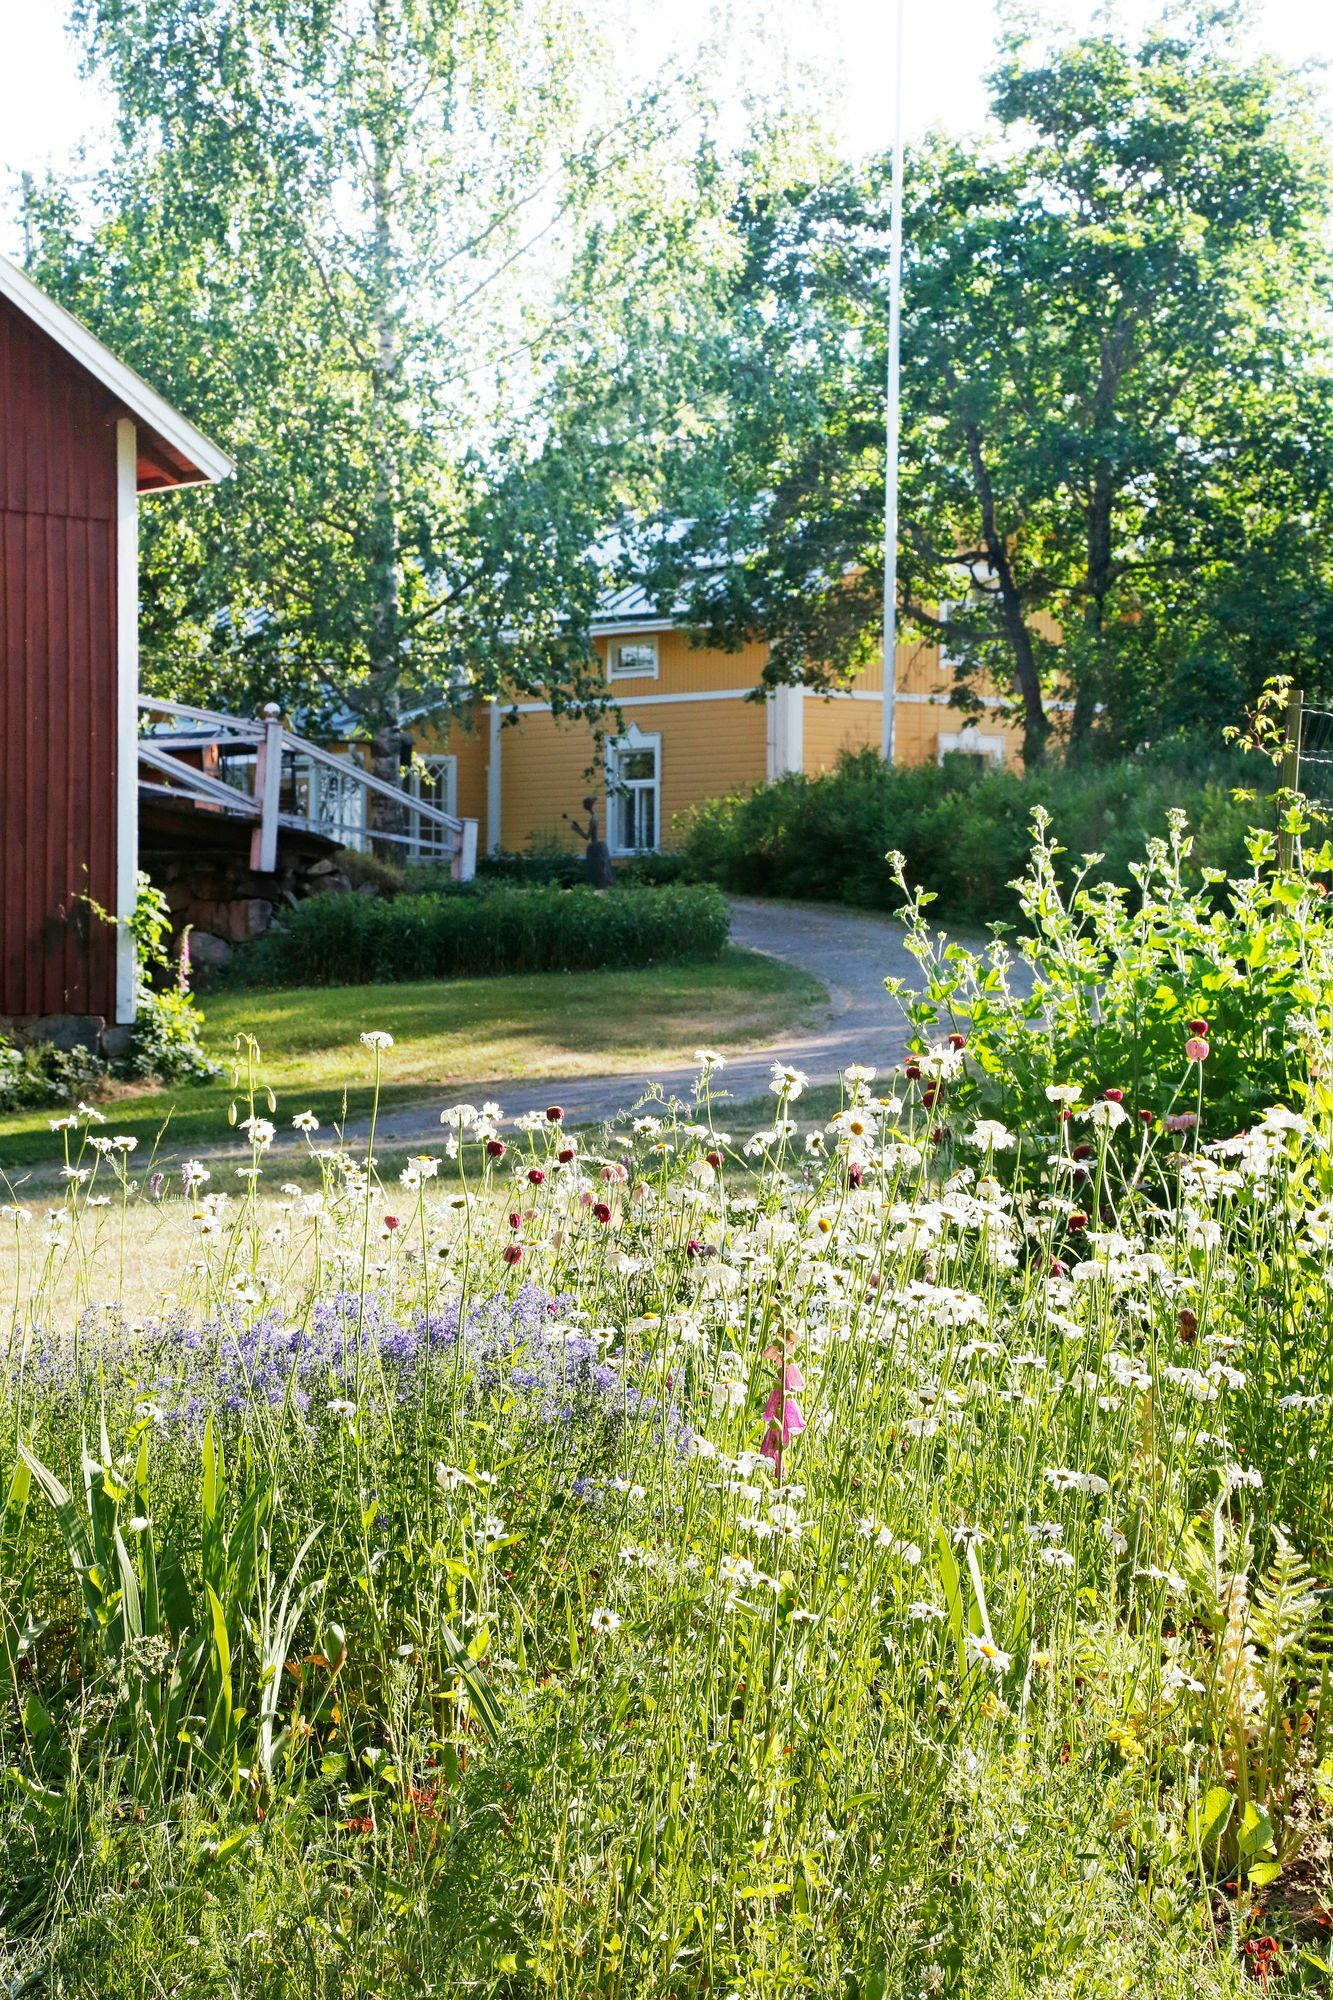 The meadow contributes to the mowing of the lawn and fits beautifully into the yard of the farmhouse.  It is advisable to cut the hay before they seed.  Otherwise, they will easily take over the area from the slimmer meadow flowers.